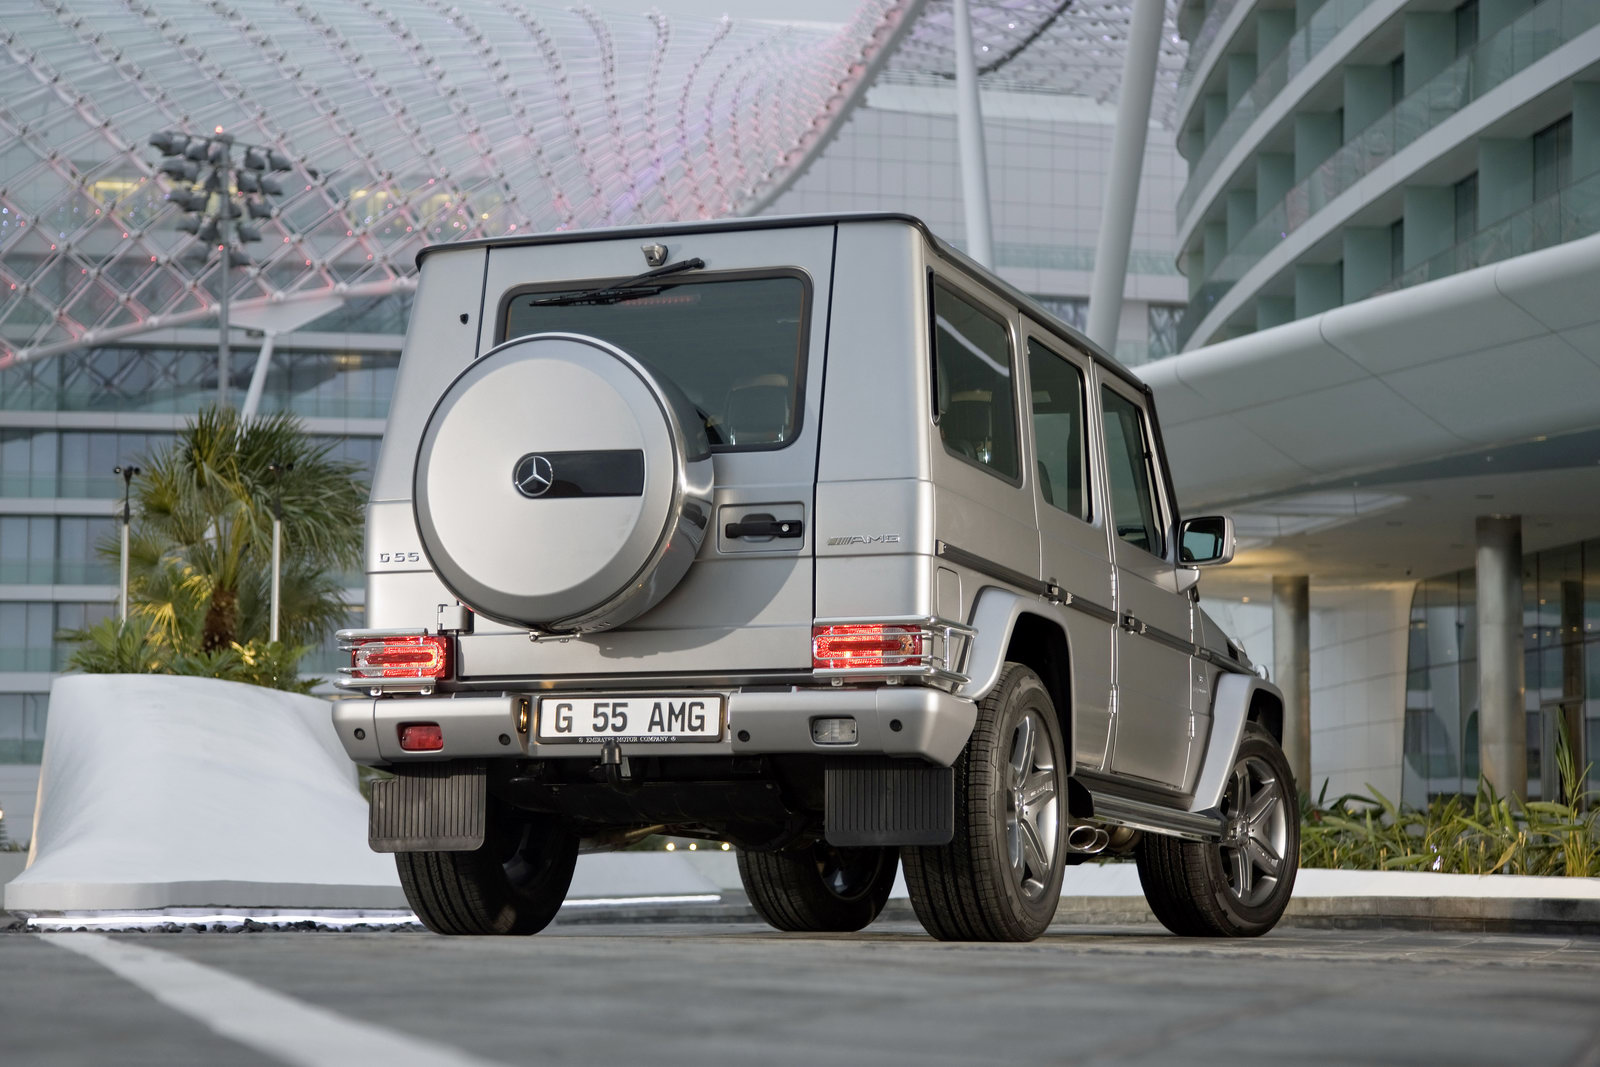 Mercedes G55 AMG 7 Mercedes Benz G ClassVariant  More Attractive and Dynamic in Nature